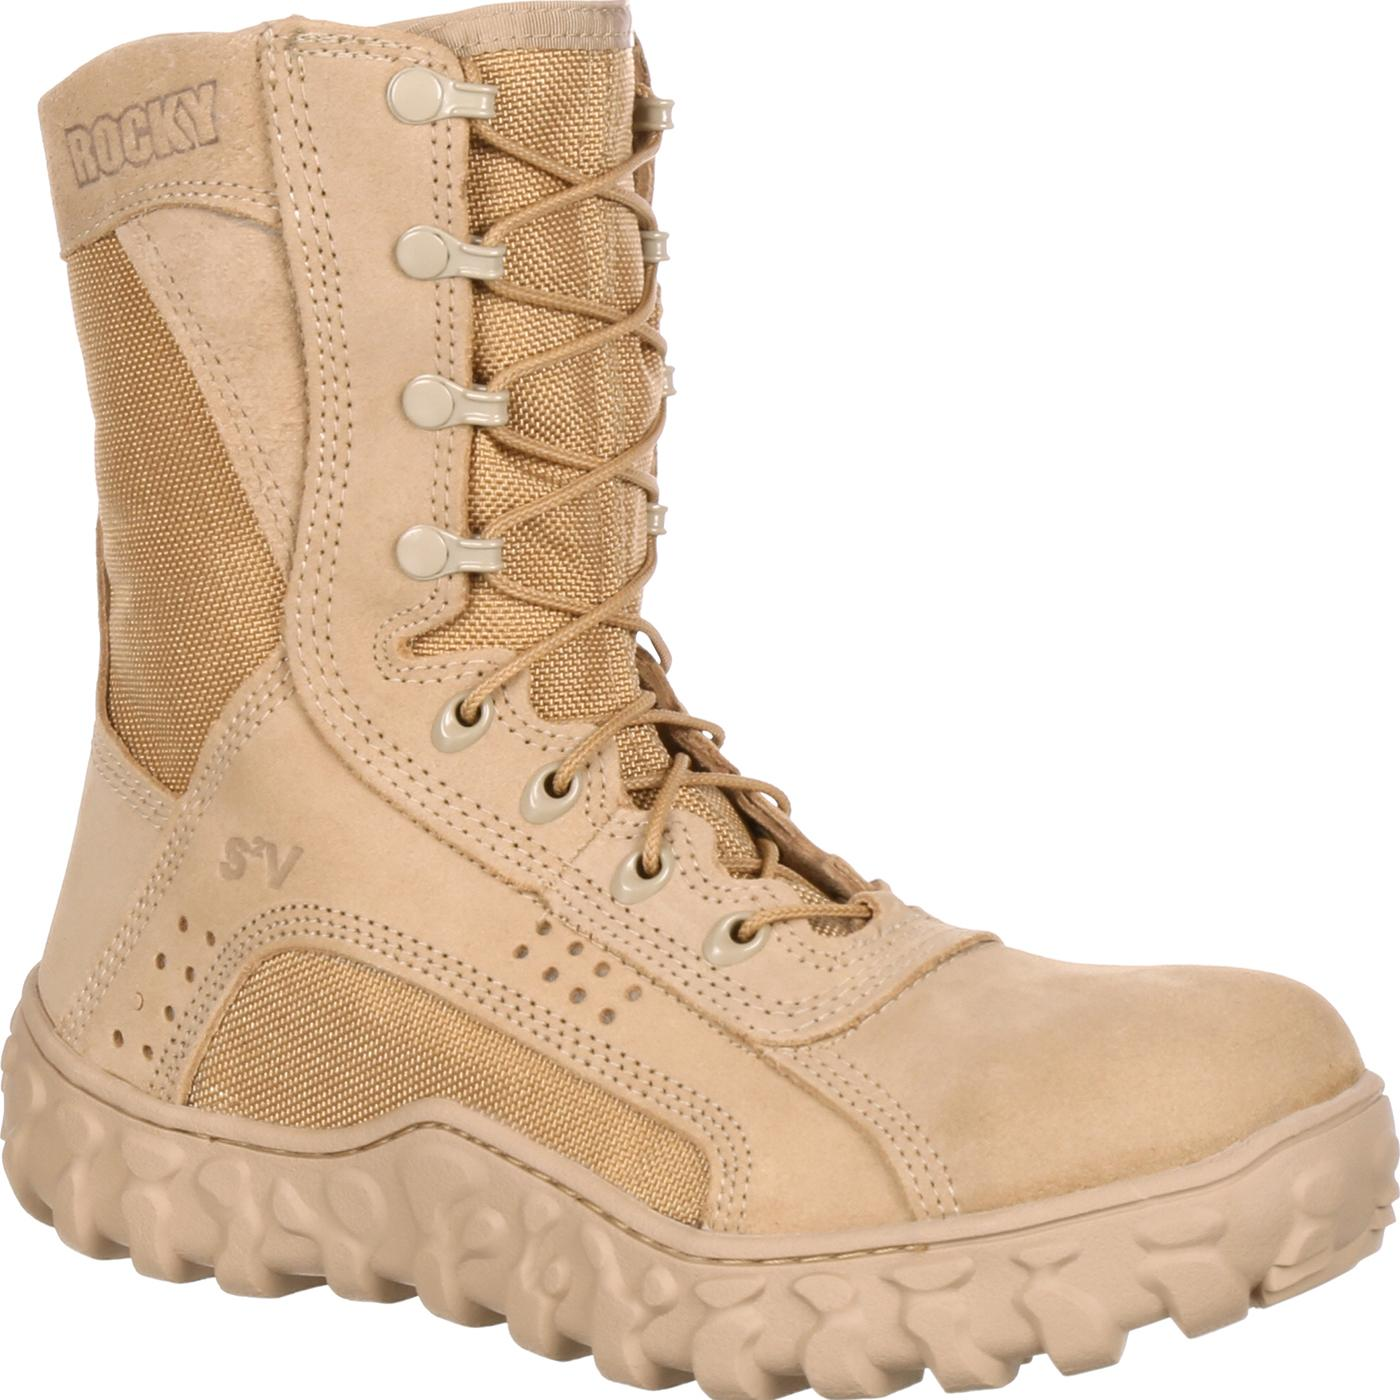 Rocky S2v Comfortable Usa Made Military Boot Fq0000101